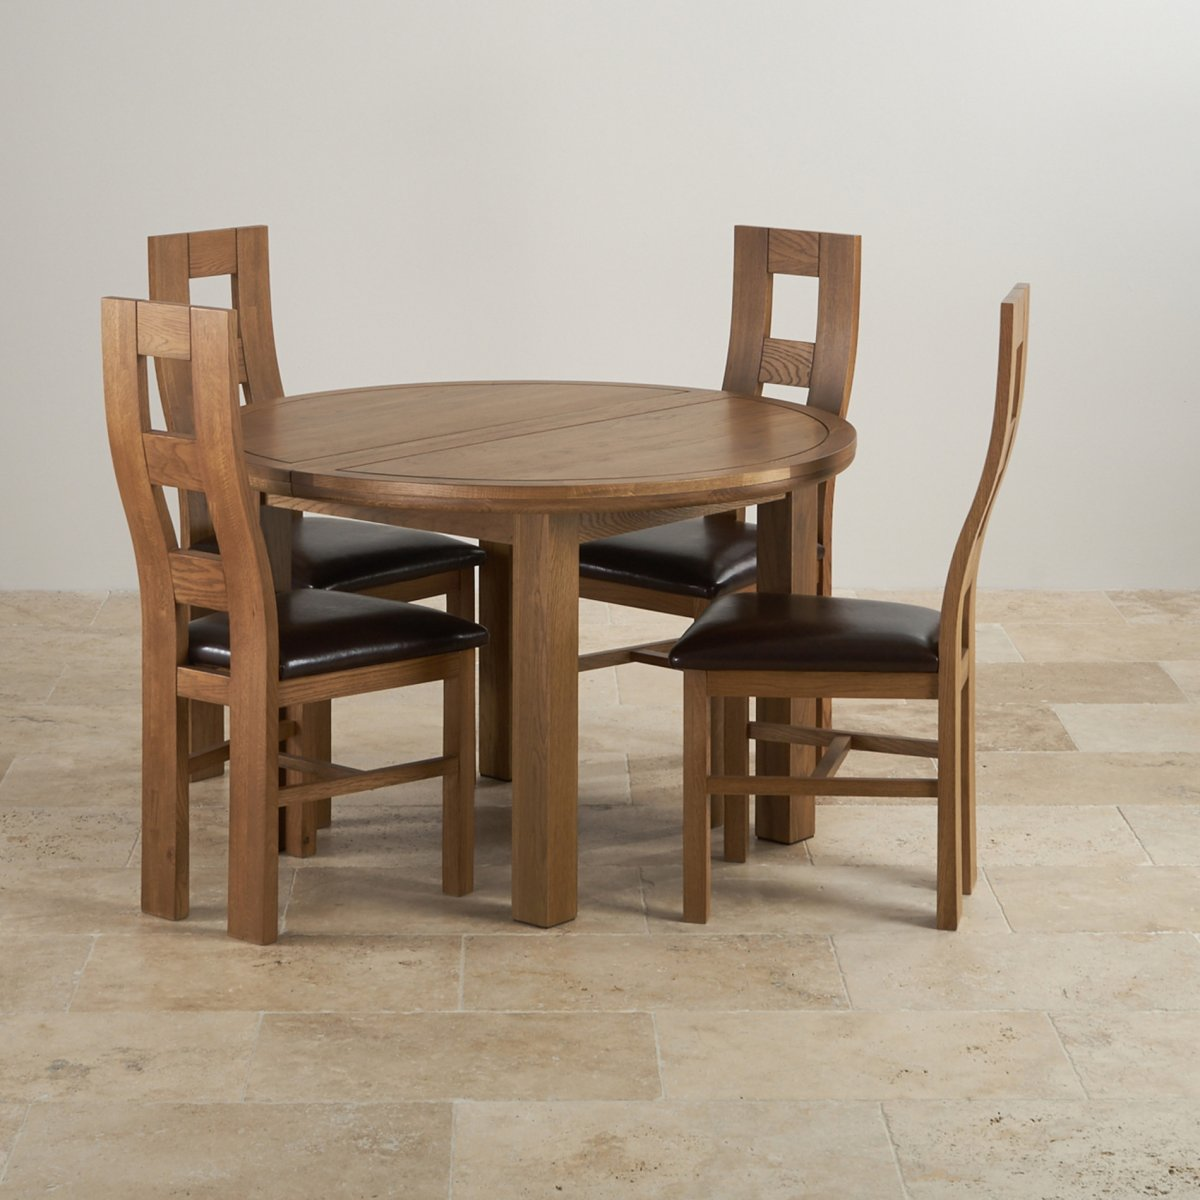 Knightsbridge round extending dining table 4 leather chairs - Round extending dining table ...